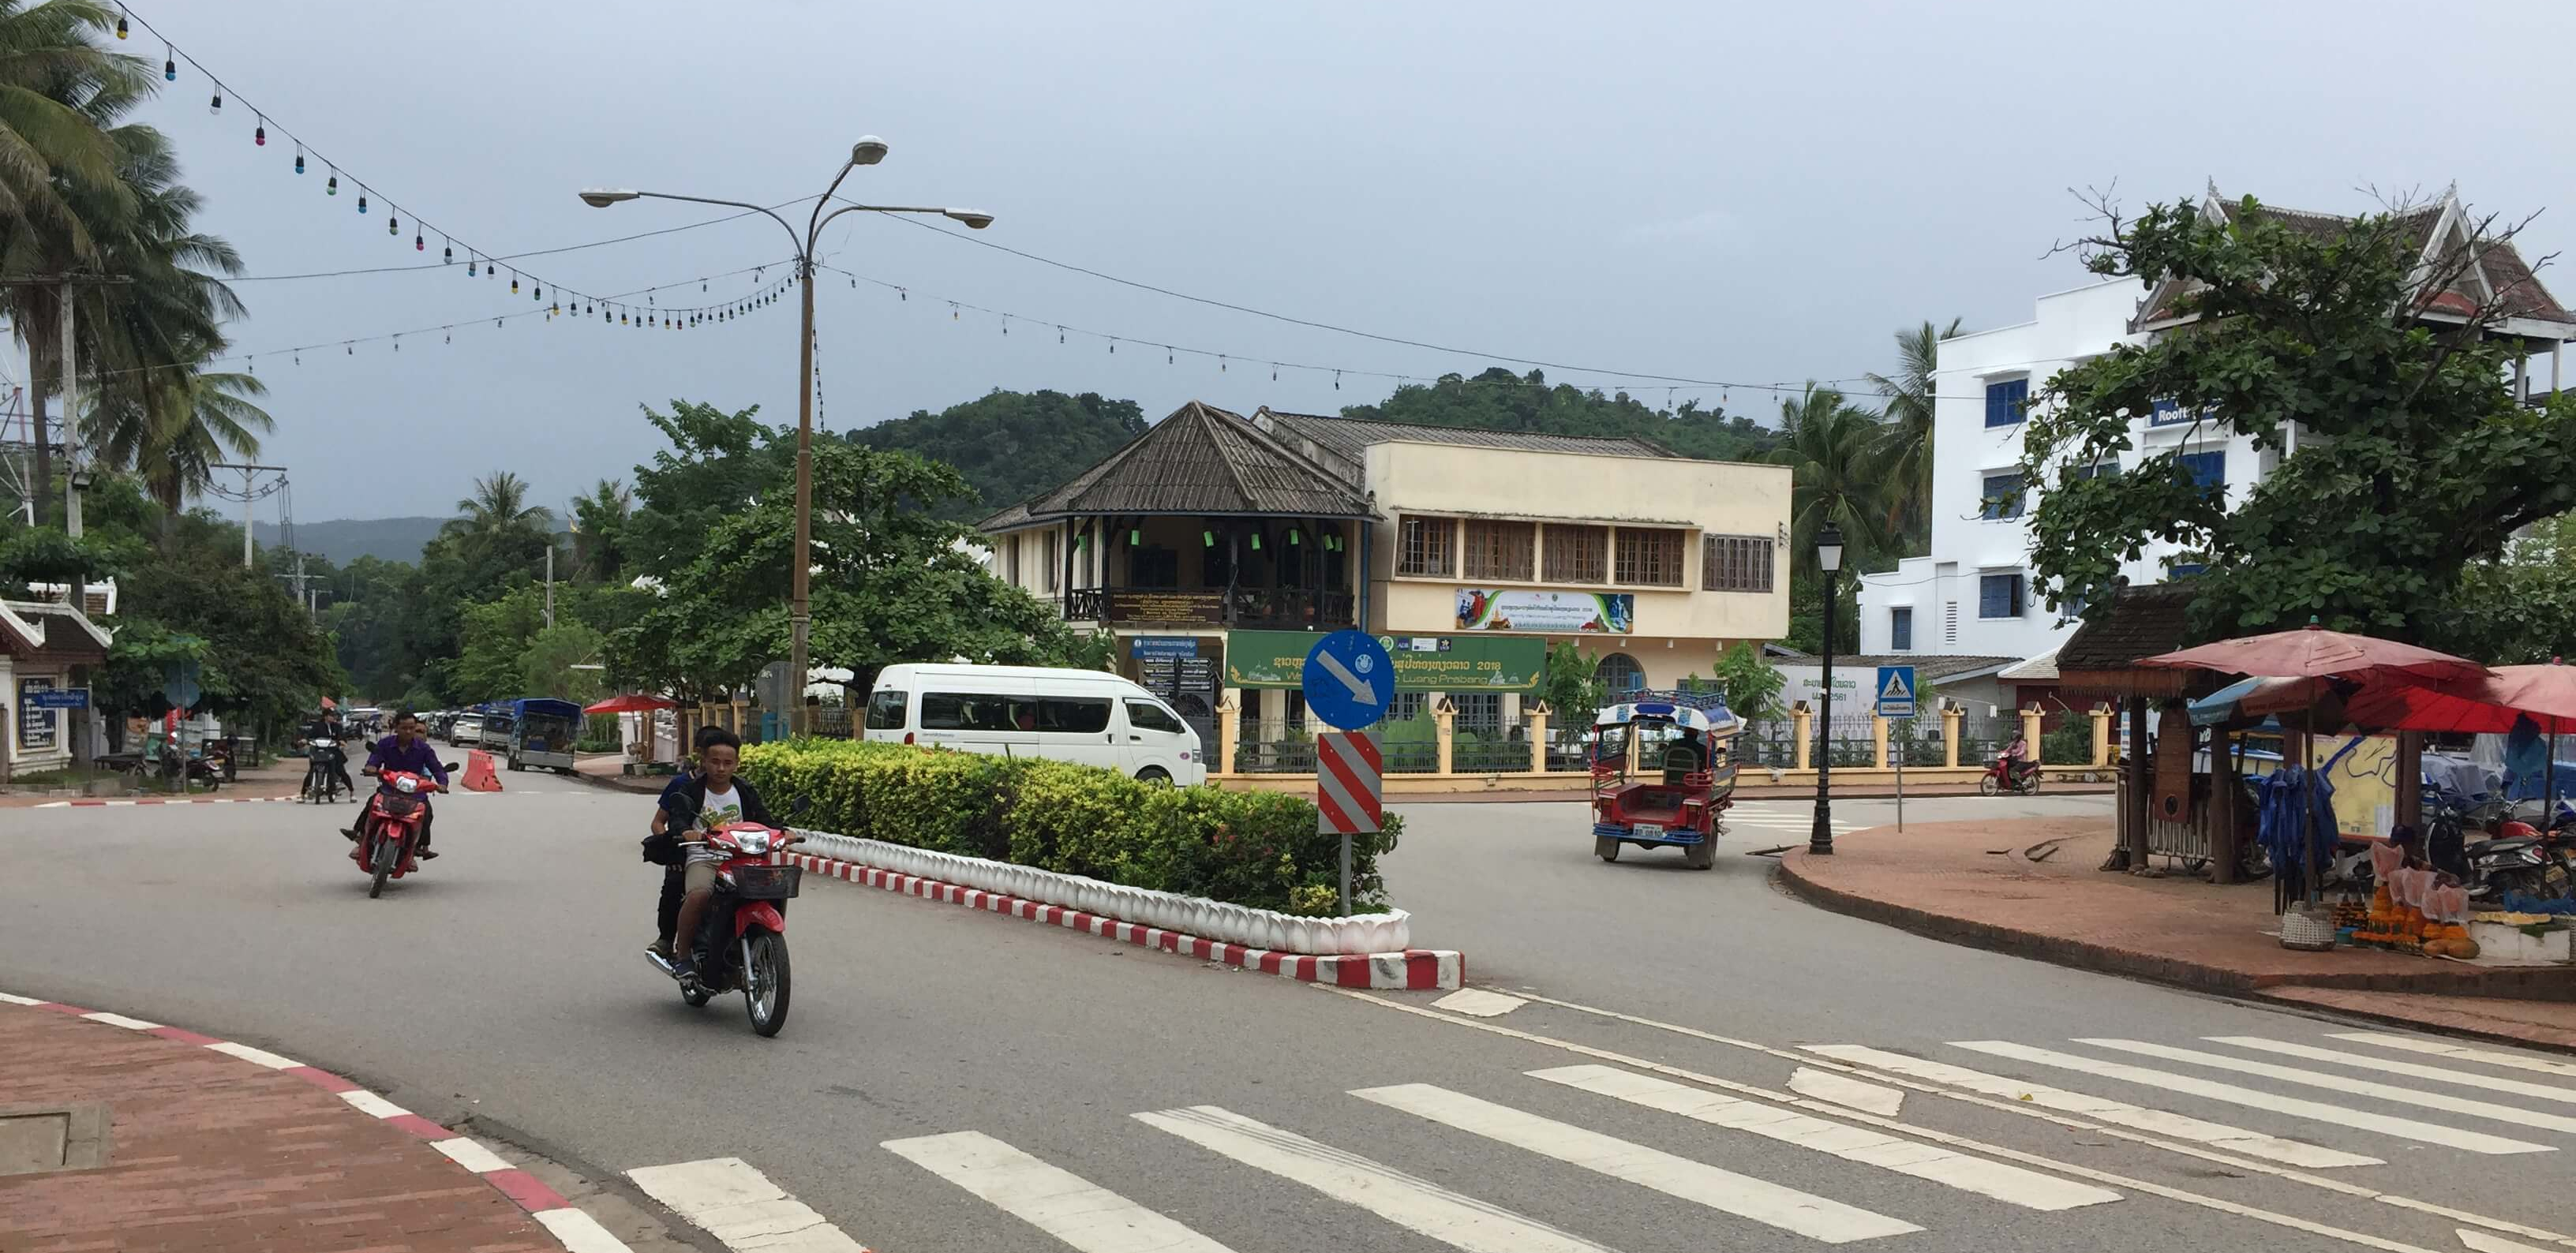 Intersection in Luang Prabang, Laos